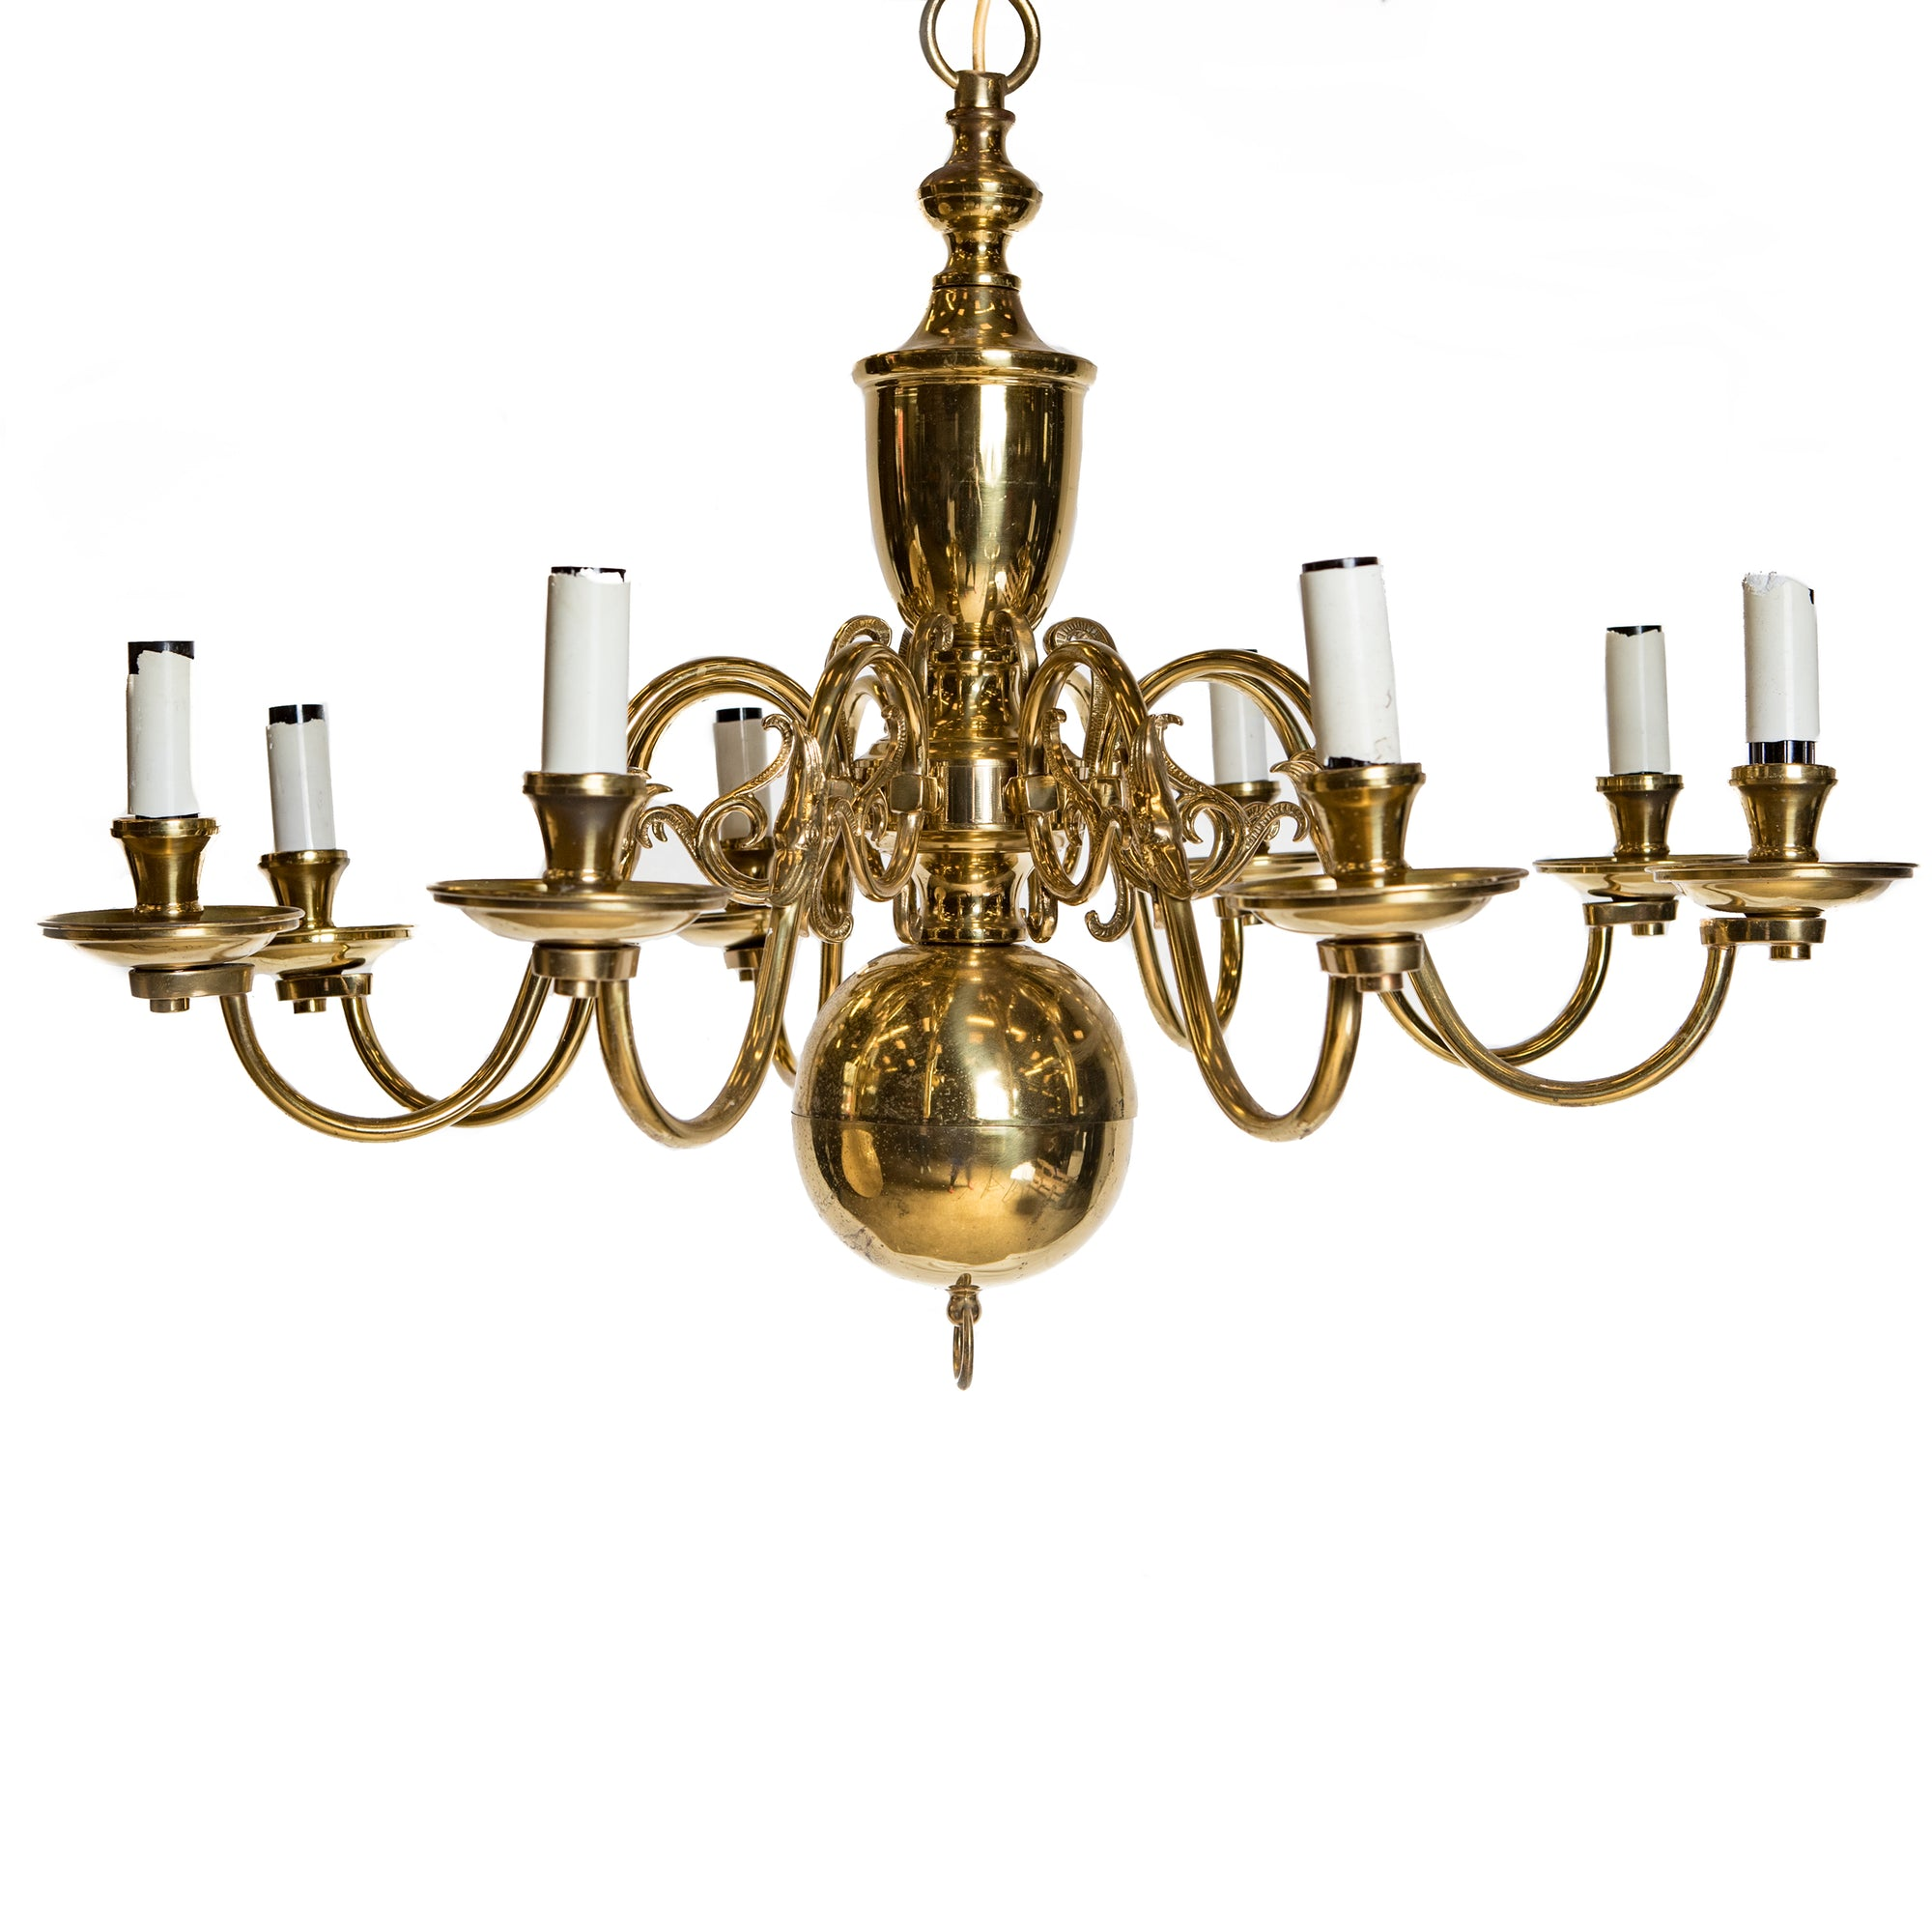 Reclaimed Antique Brass 8 Arm Chandelier